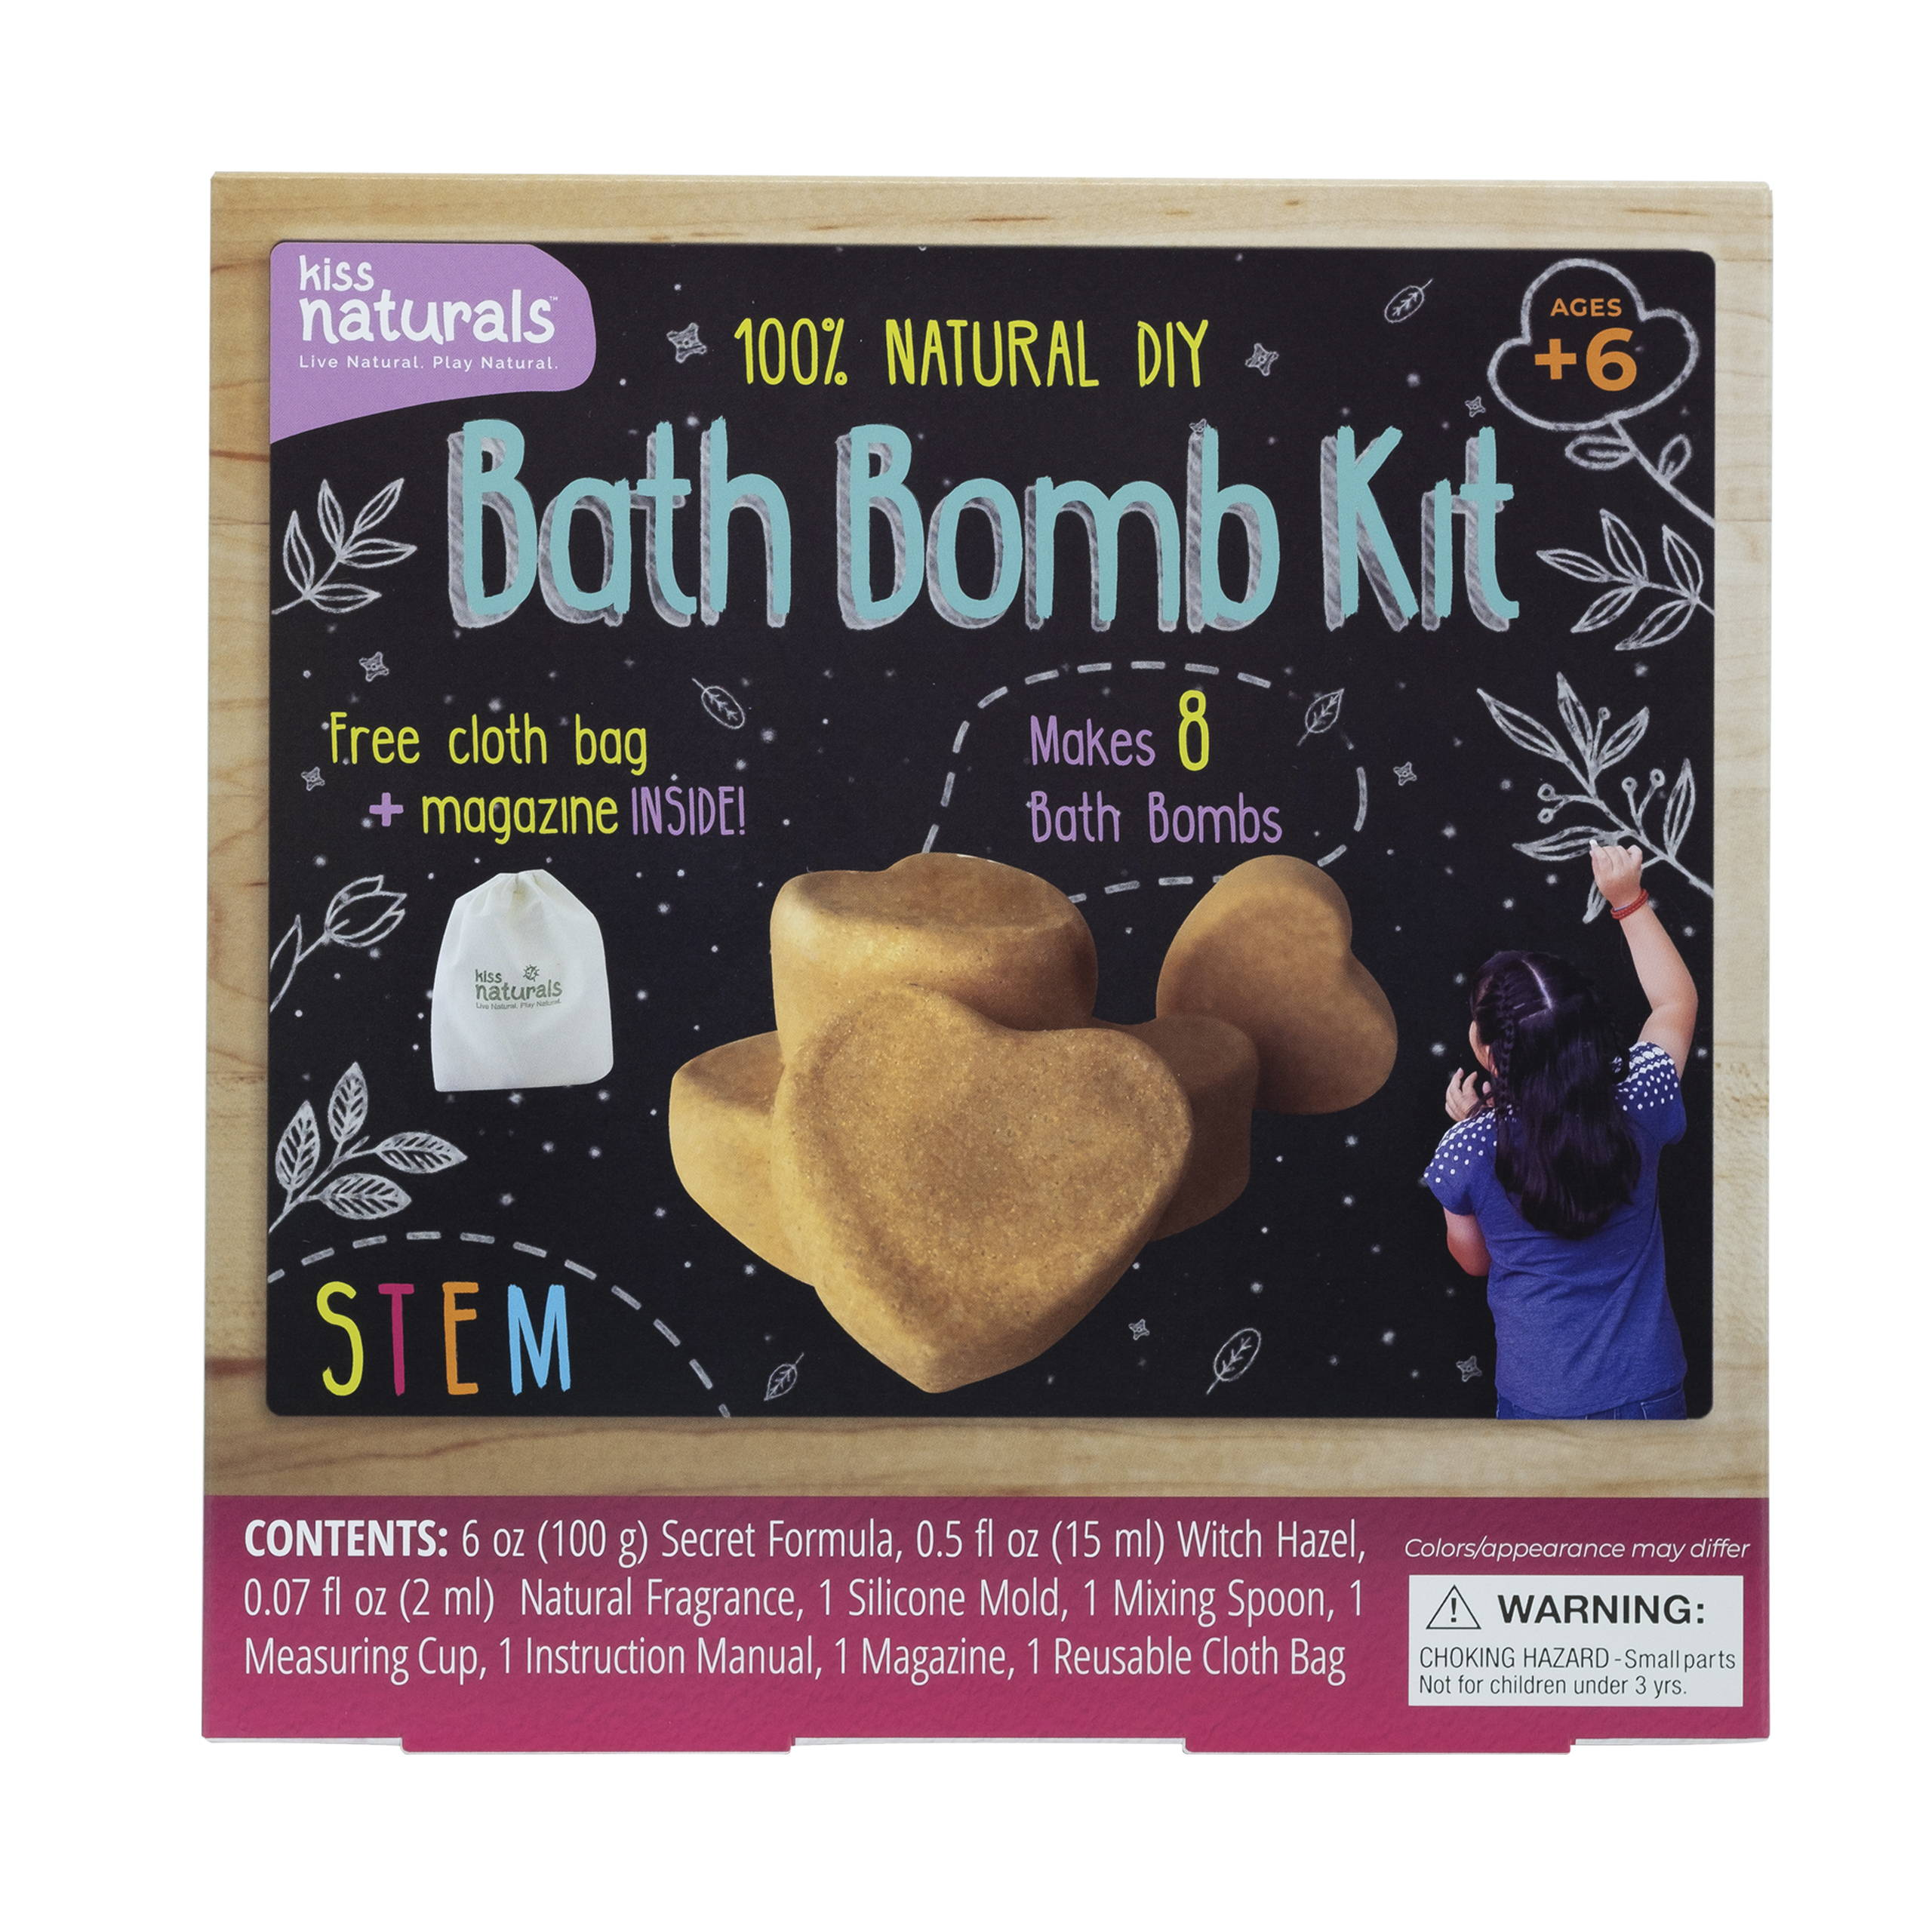 Bath Bomb Kit, 100% natural. Comes with reusable bag and furoshiki cloth. Makes 8 bath bombs.